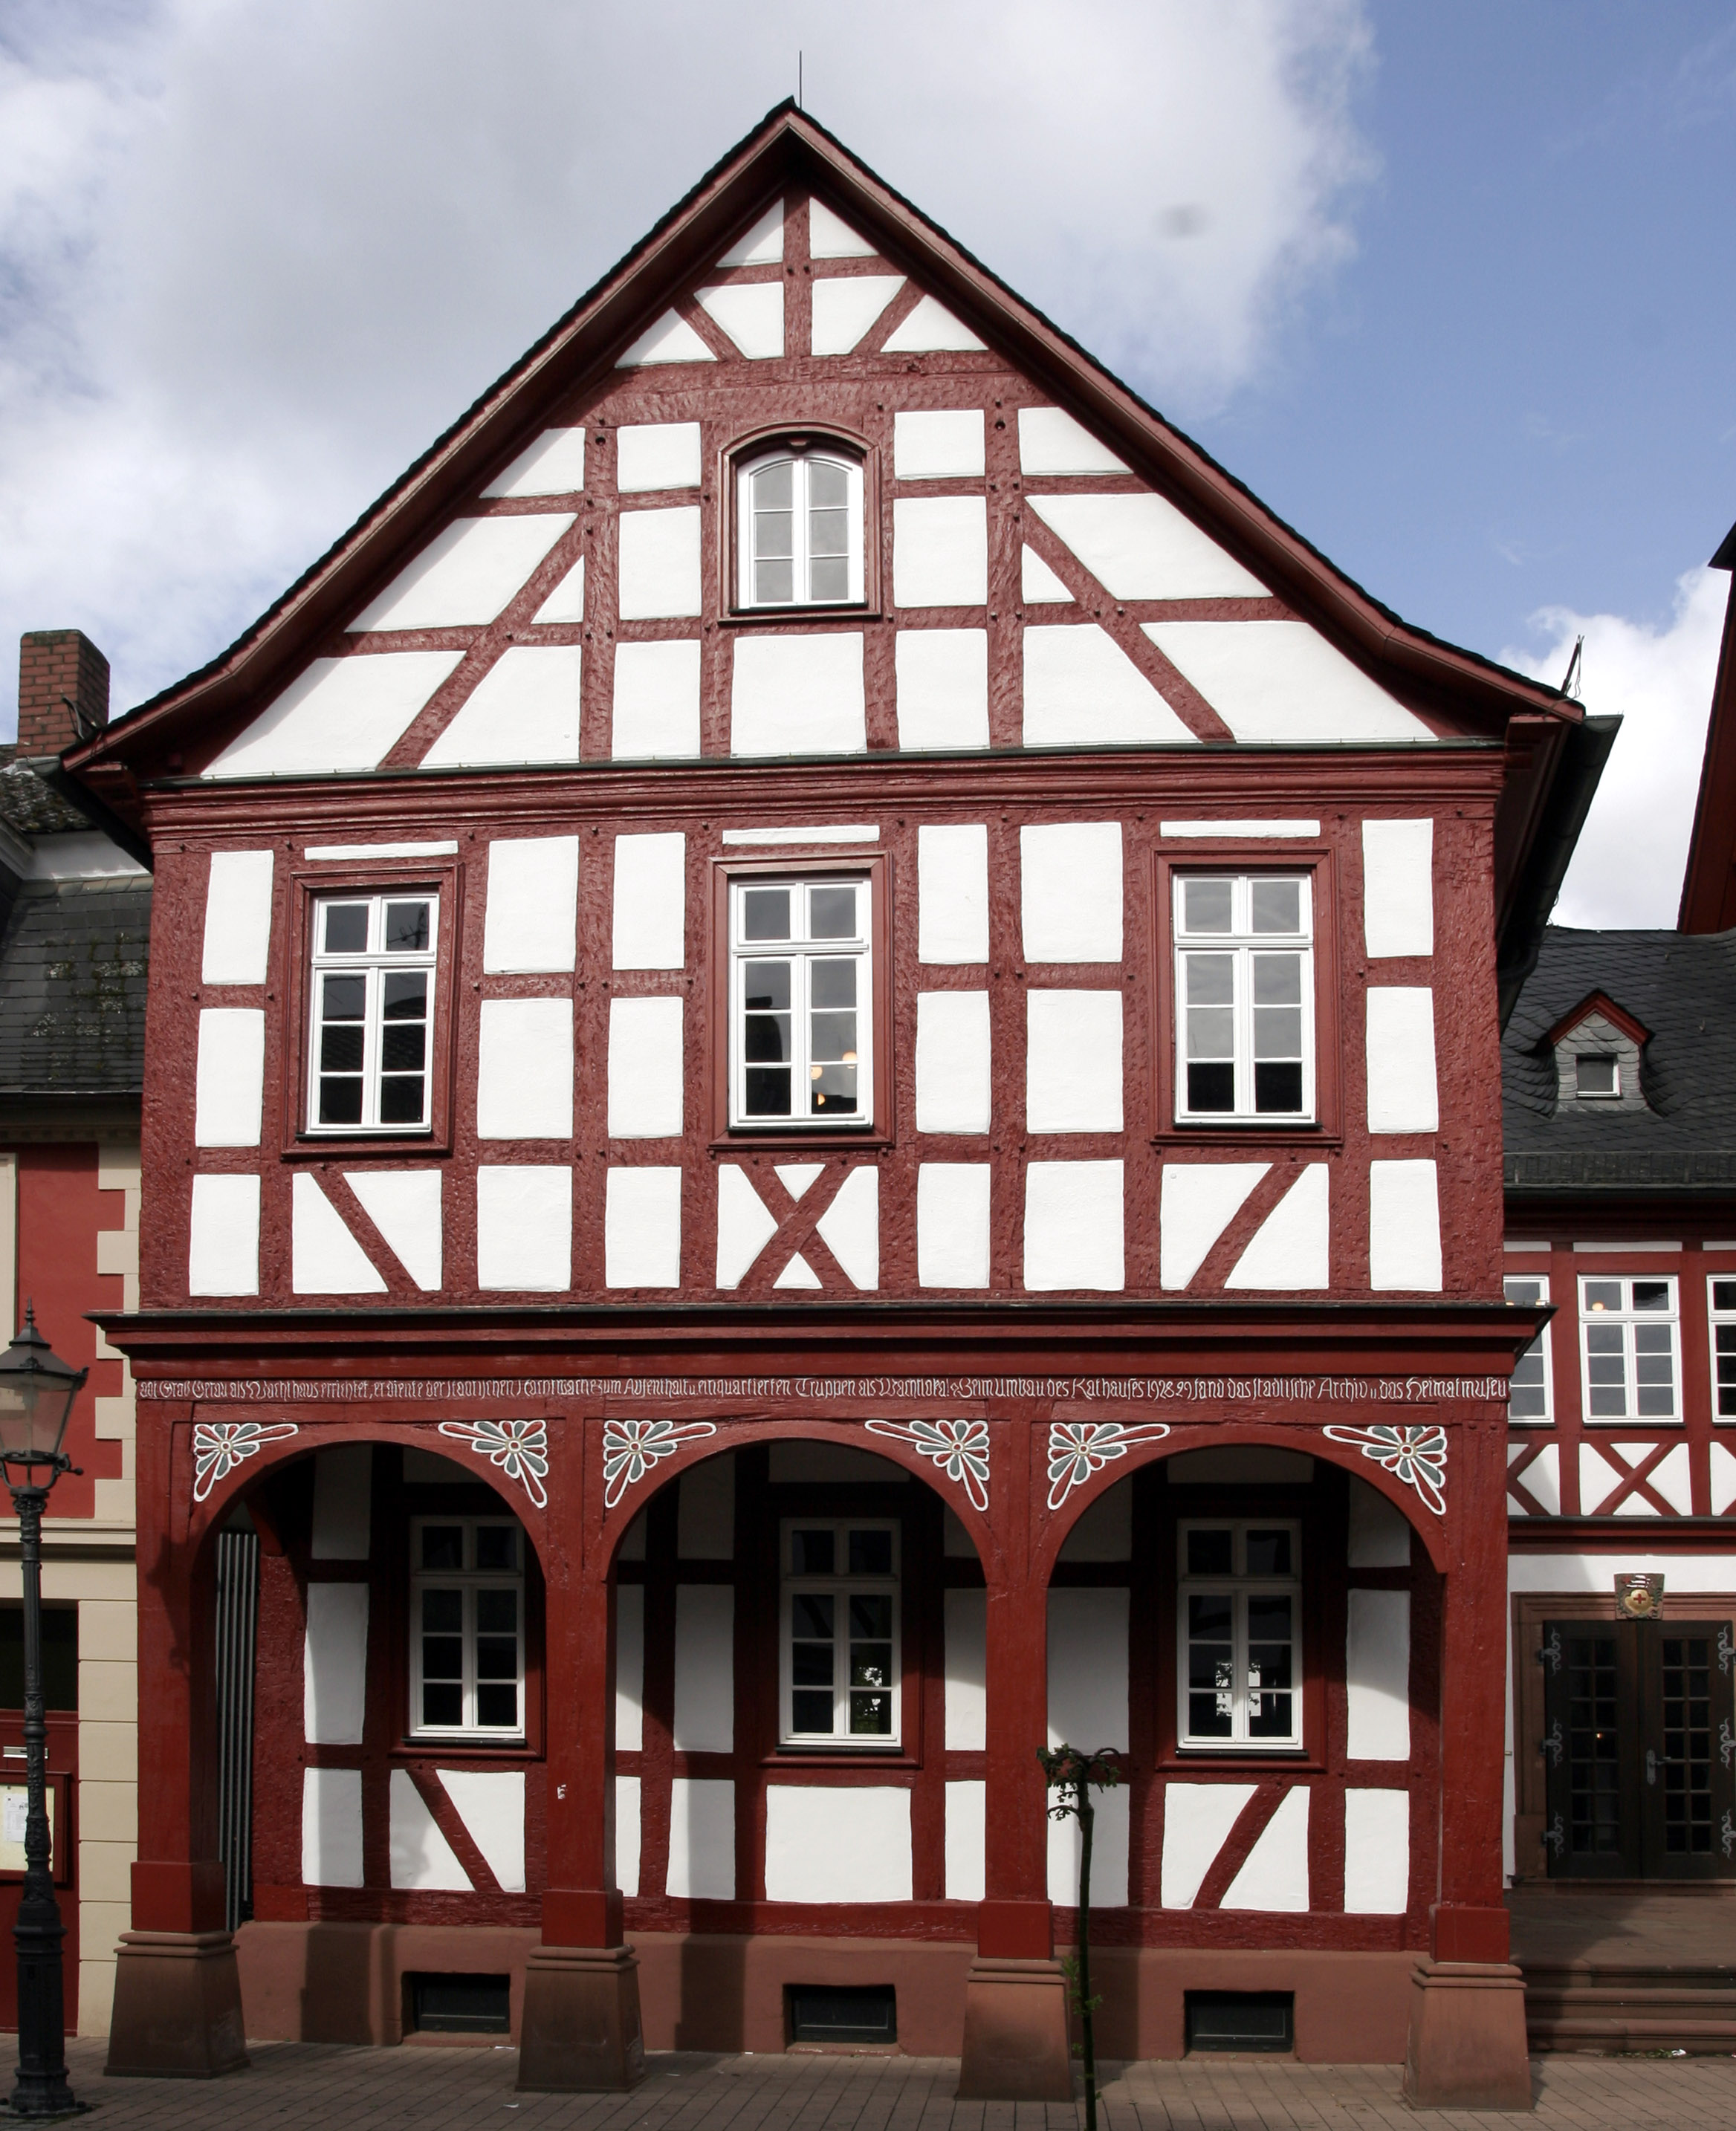 Gross-Gerau Germany  City new picture : Gross Gerau Rathaus 02 Wikimedia Commons